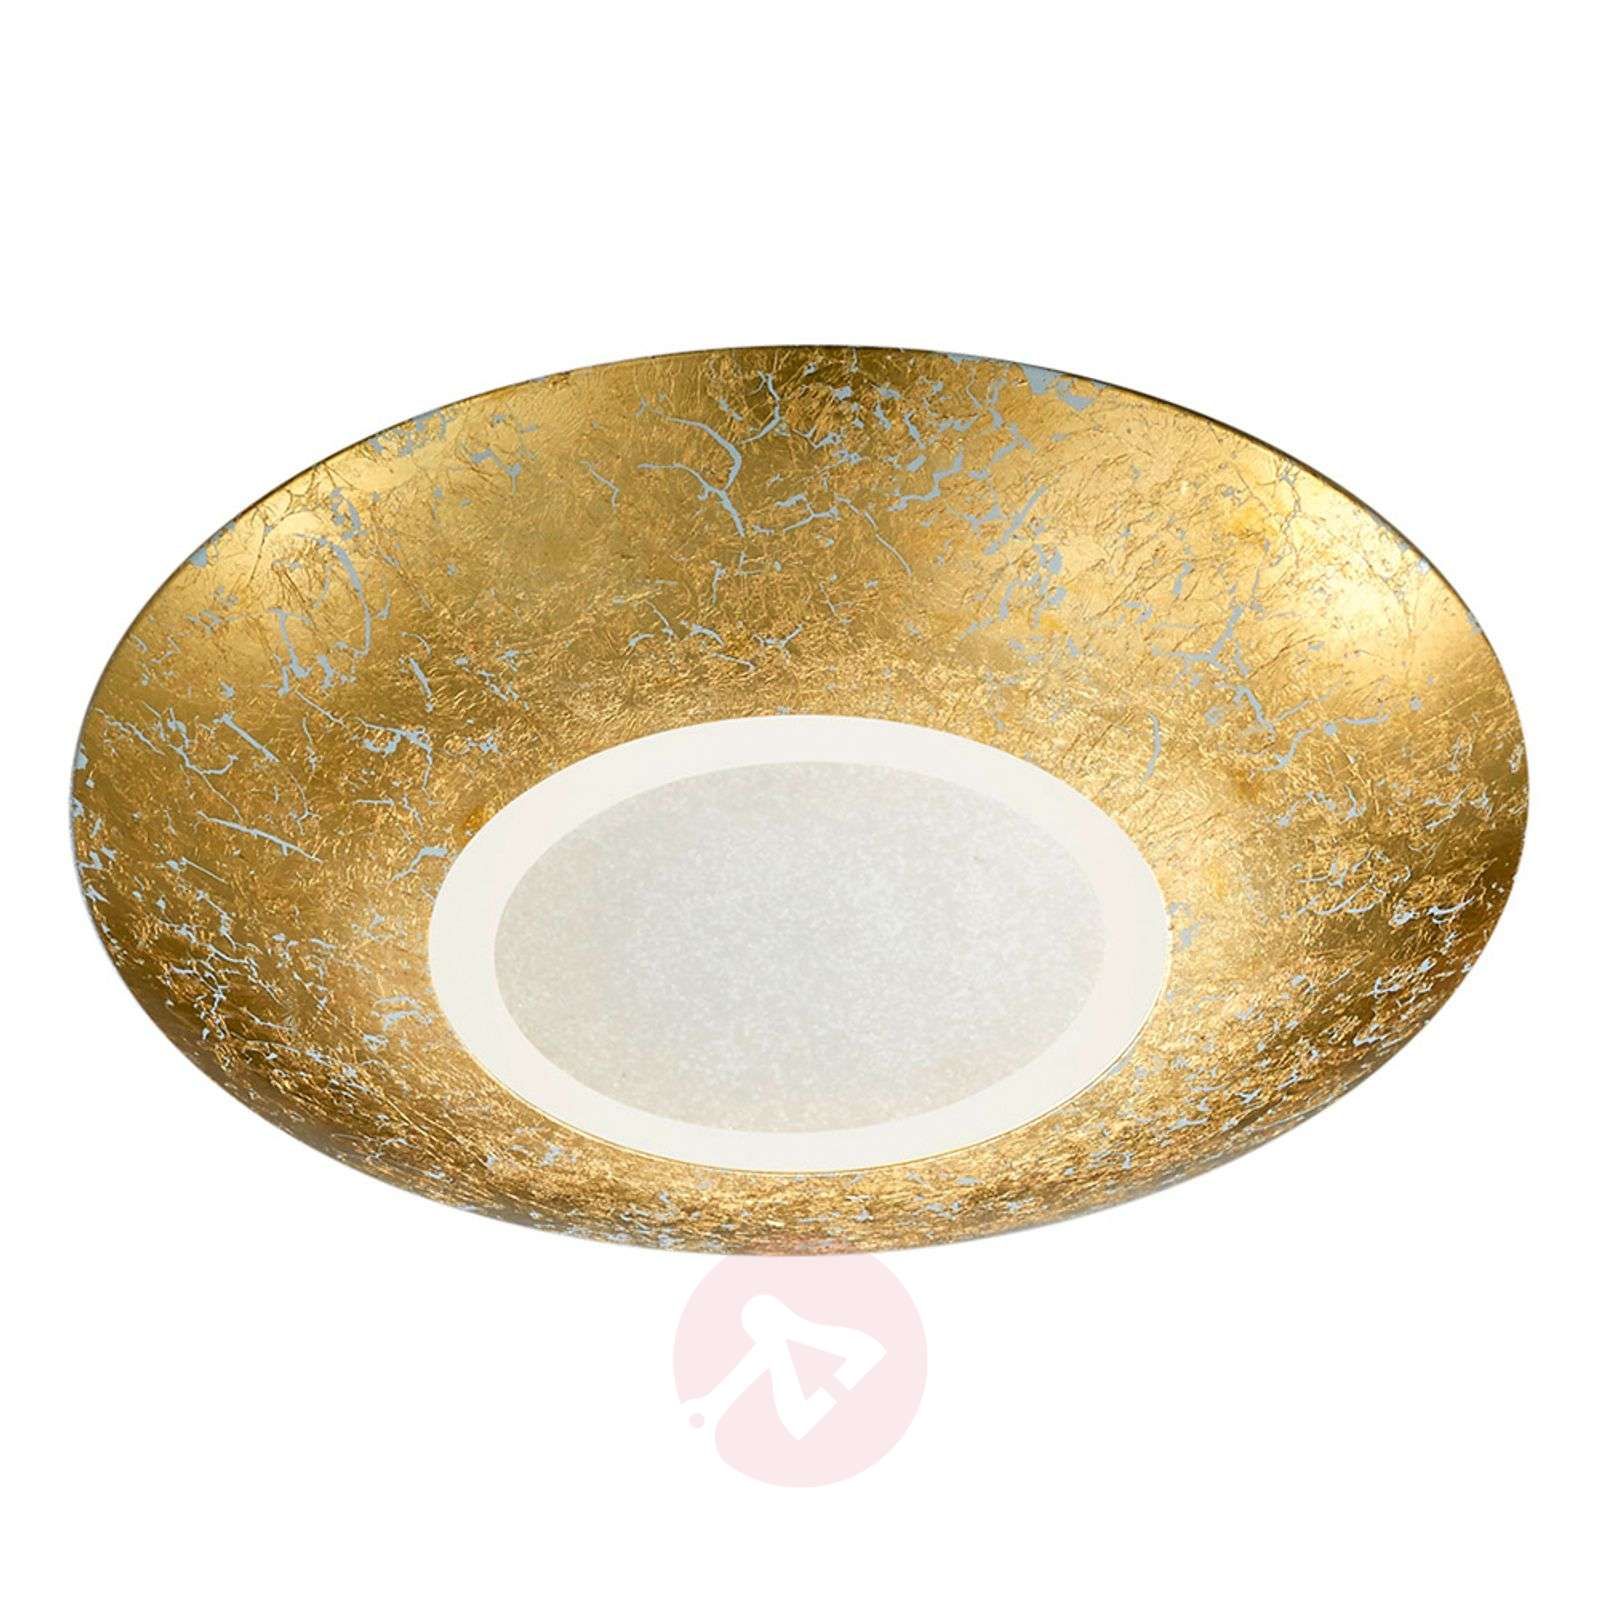 Led ceiling lamp chiros round gold colour lights led ceiling lamp chiros round gold colour 9005259 01 aloadofball Images